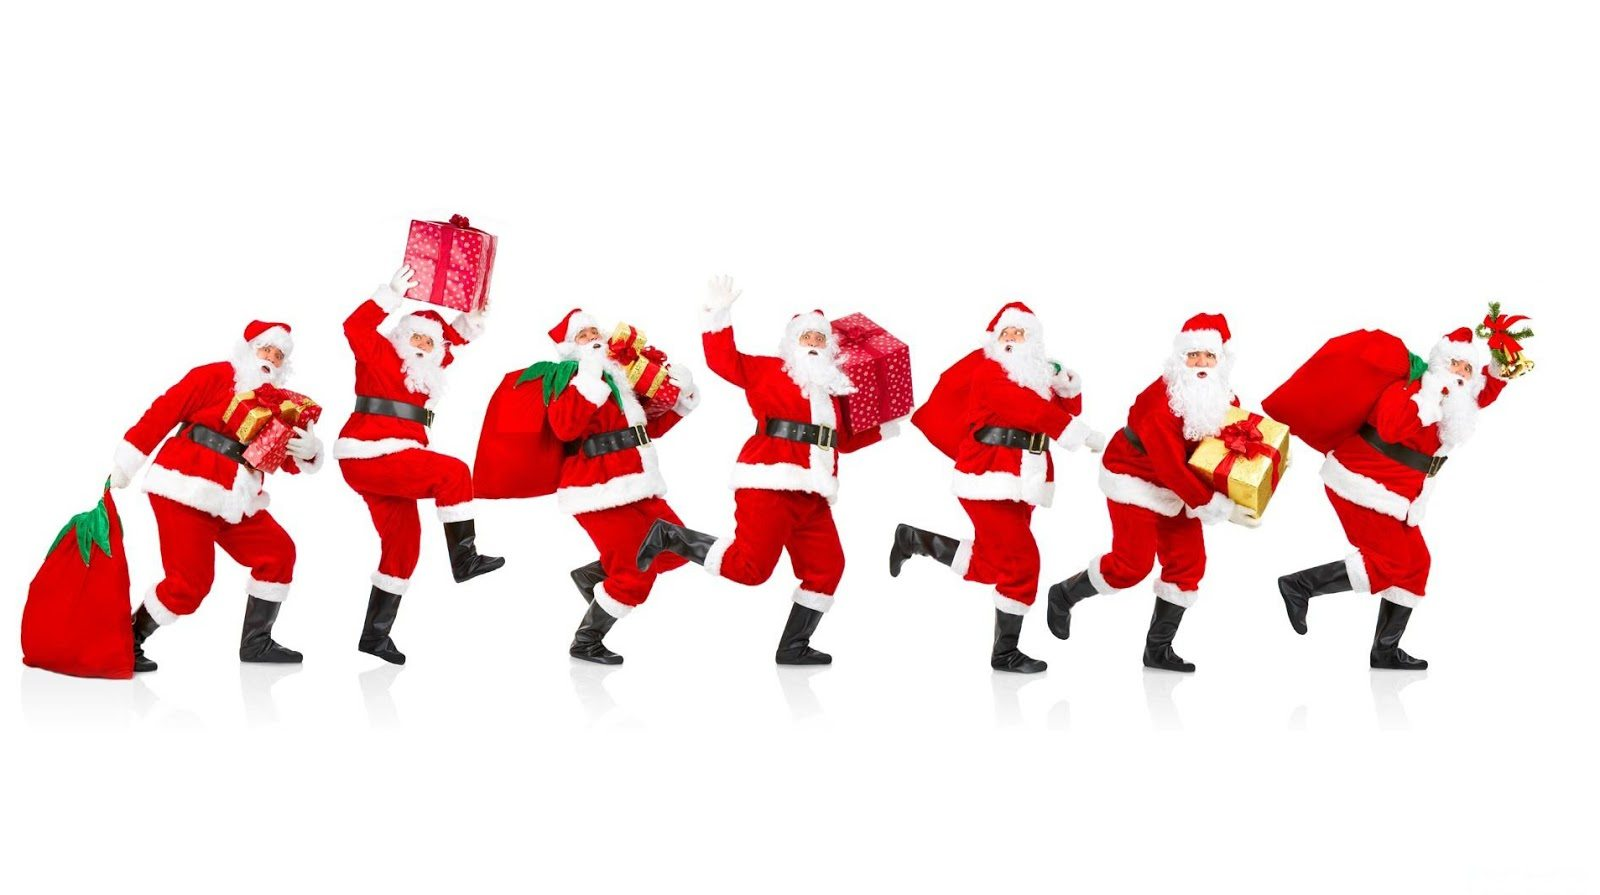 new_year_christmas_santa_claus_gifts_holiday_greetings_36364_1920x1080